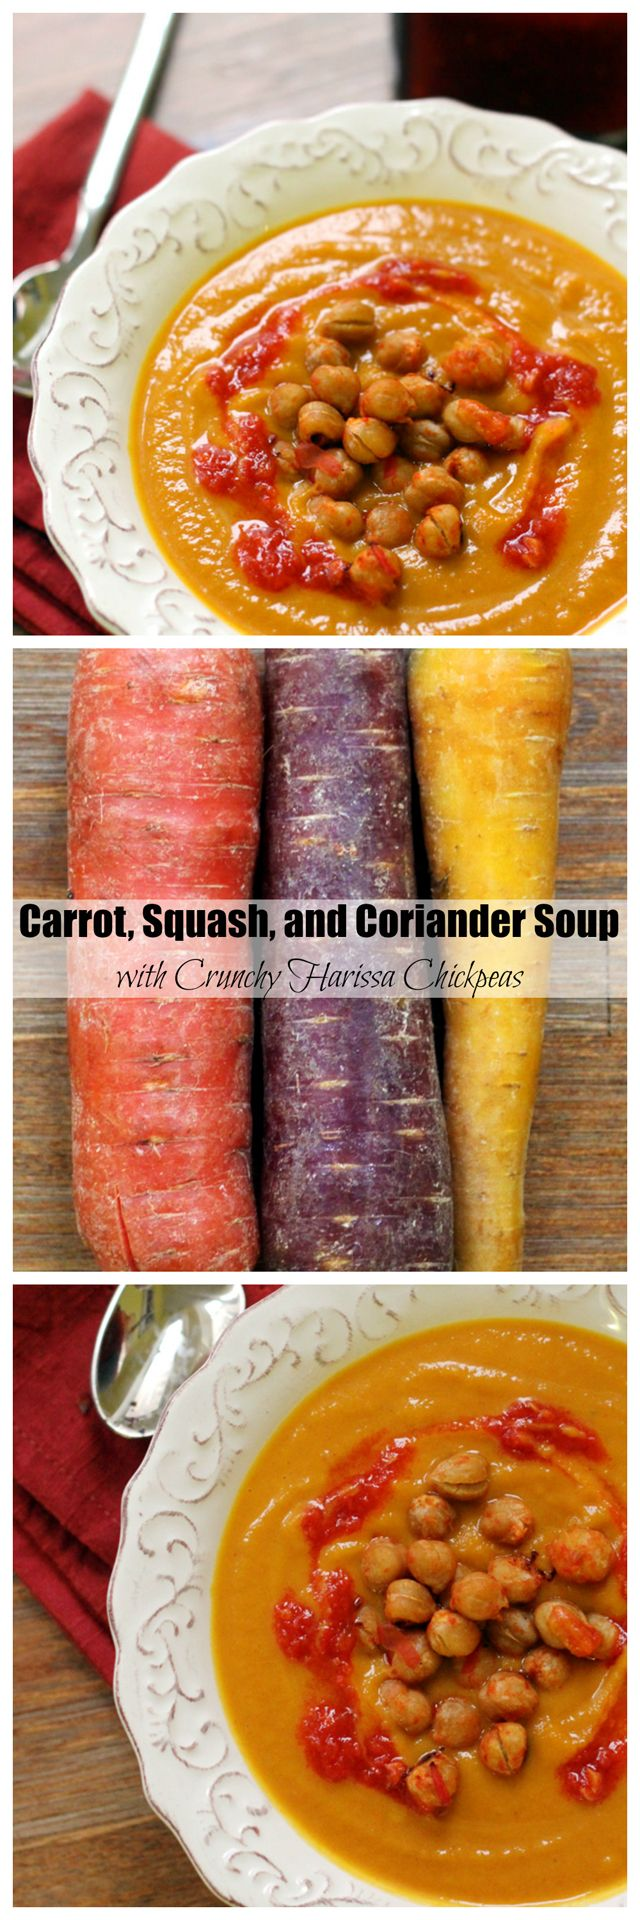 carrot, squash, and coriander soup